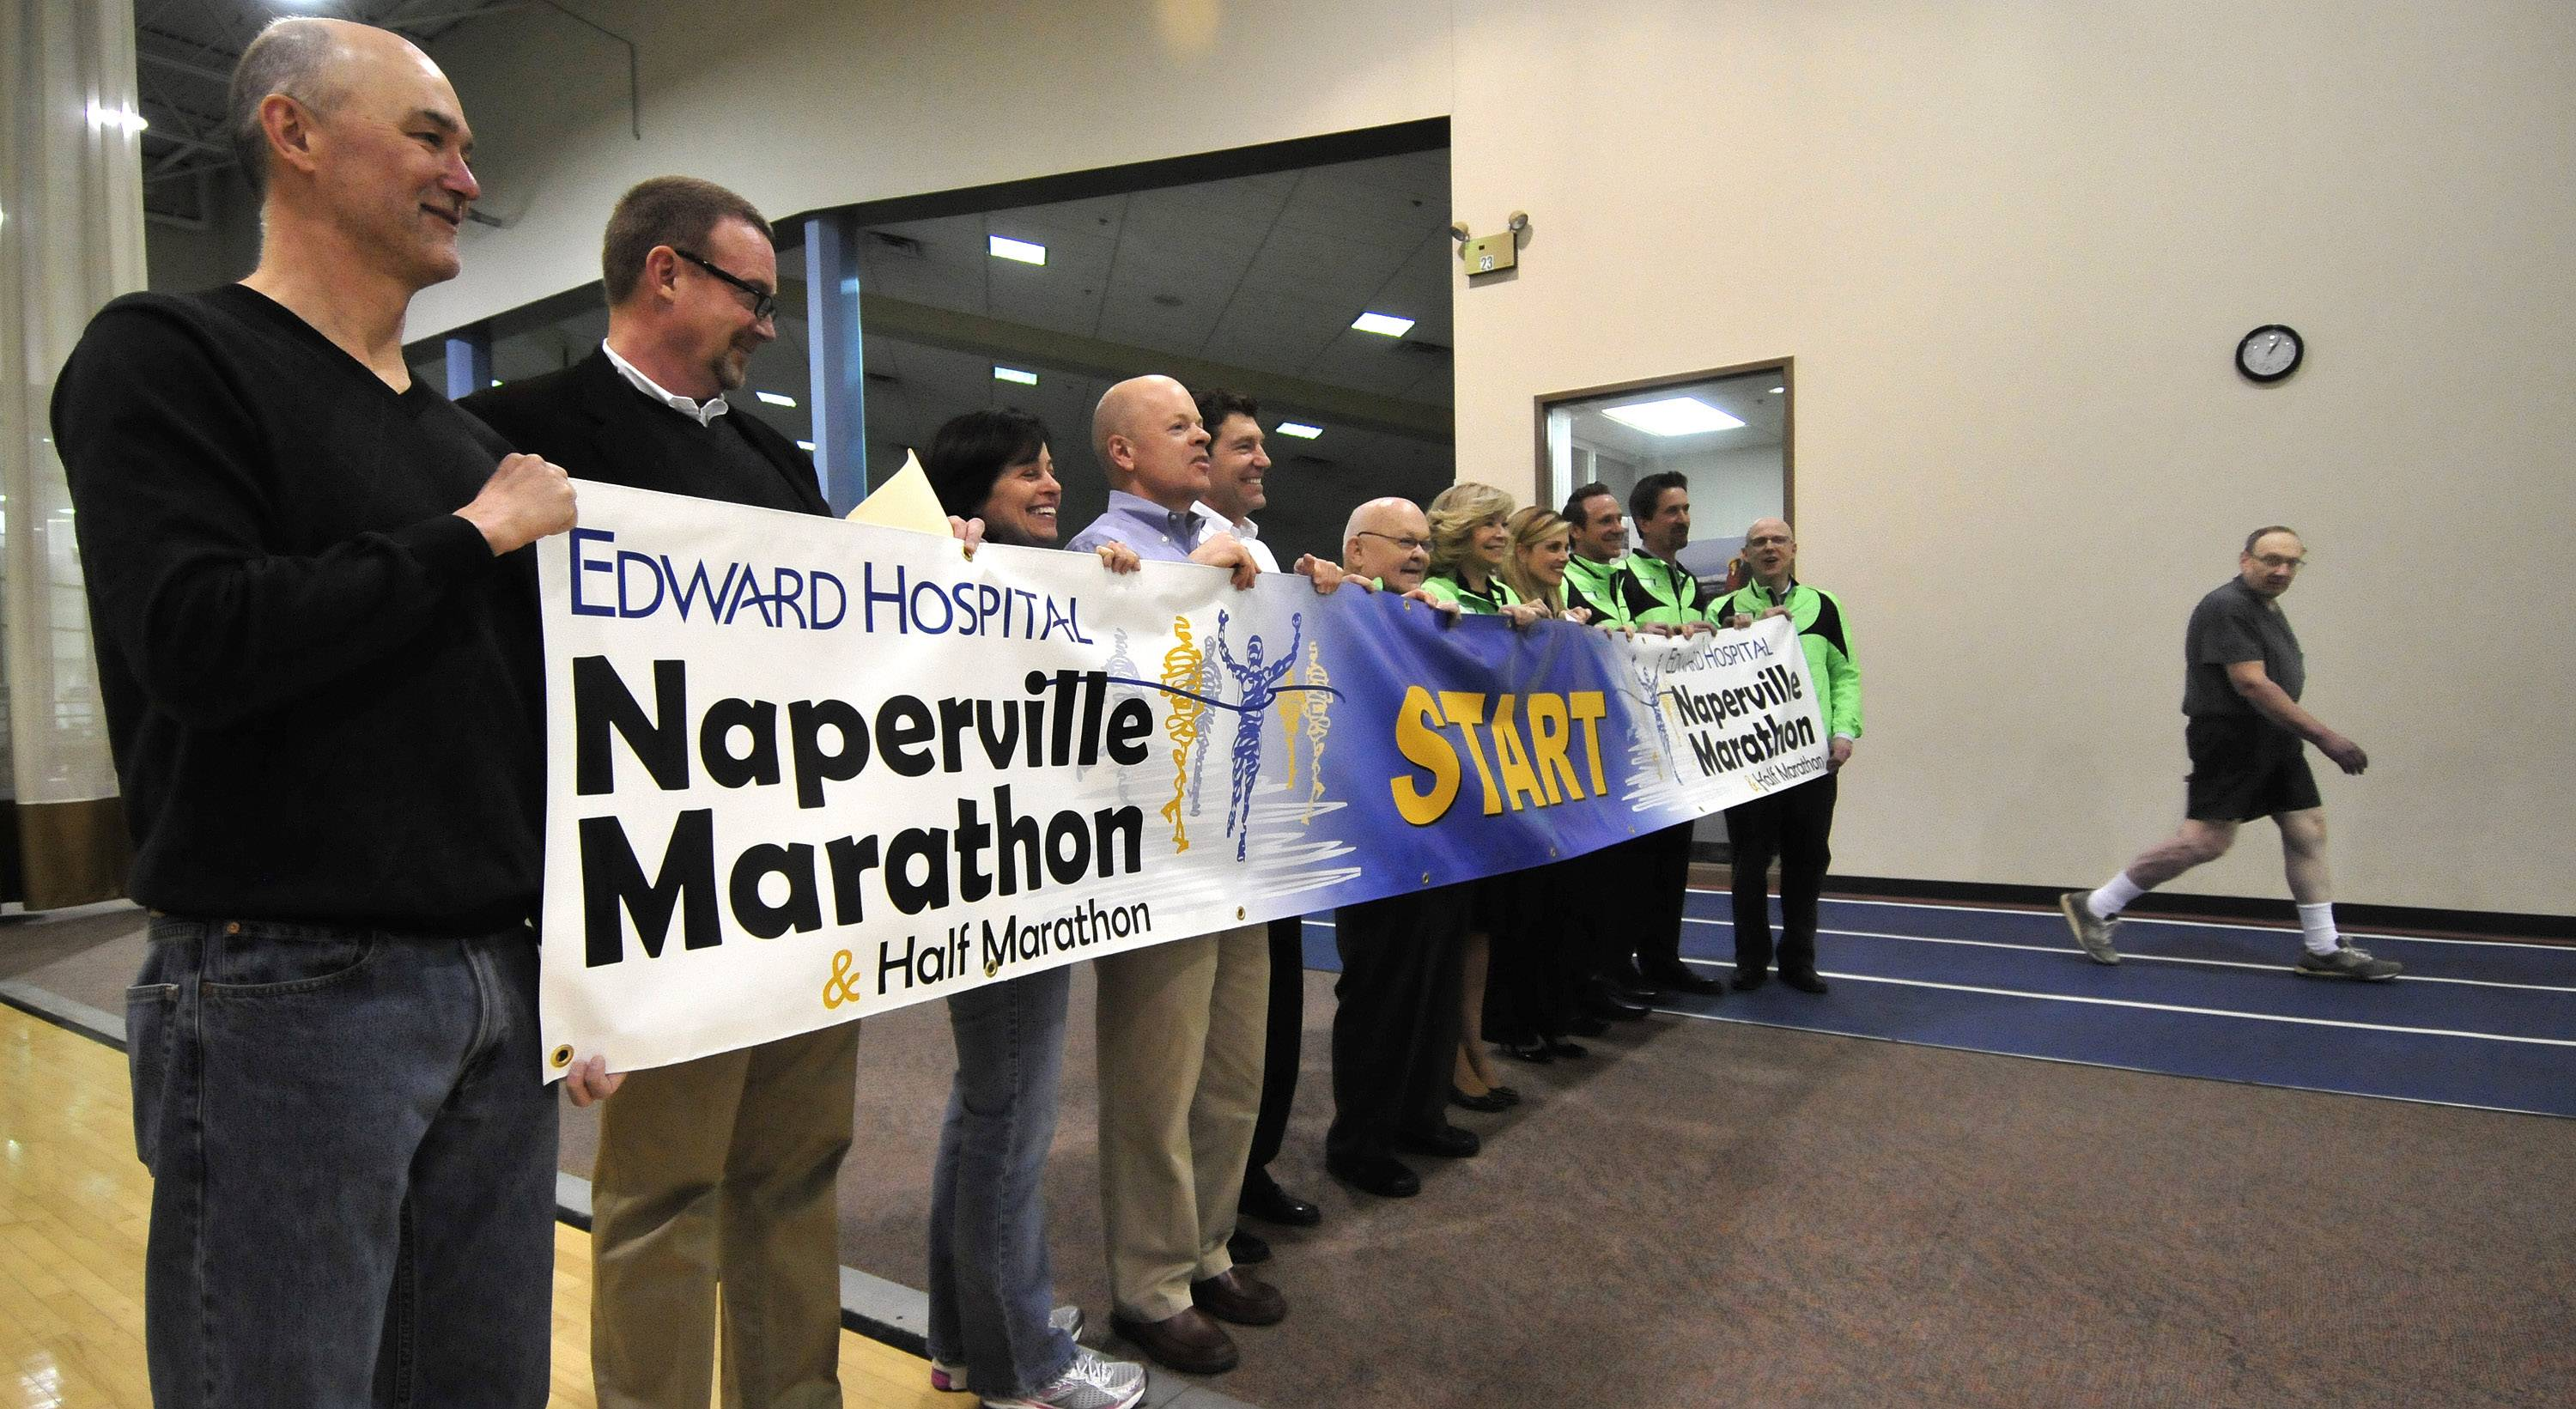 The 2013 version of the Naperville Marathon was so successful that race organizers expanded the number of race slots to 7,000 for 2014. Except for charity slots, the race is likely to sell out Sunday, organizers said.